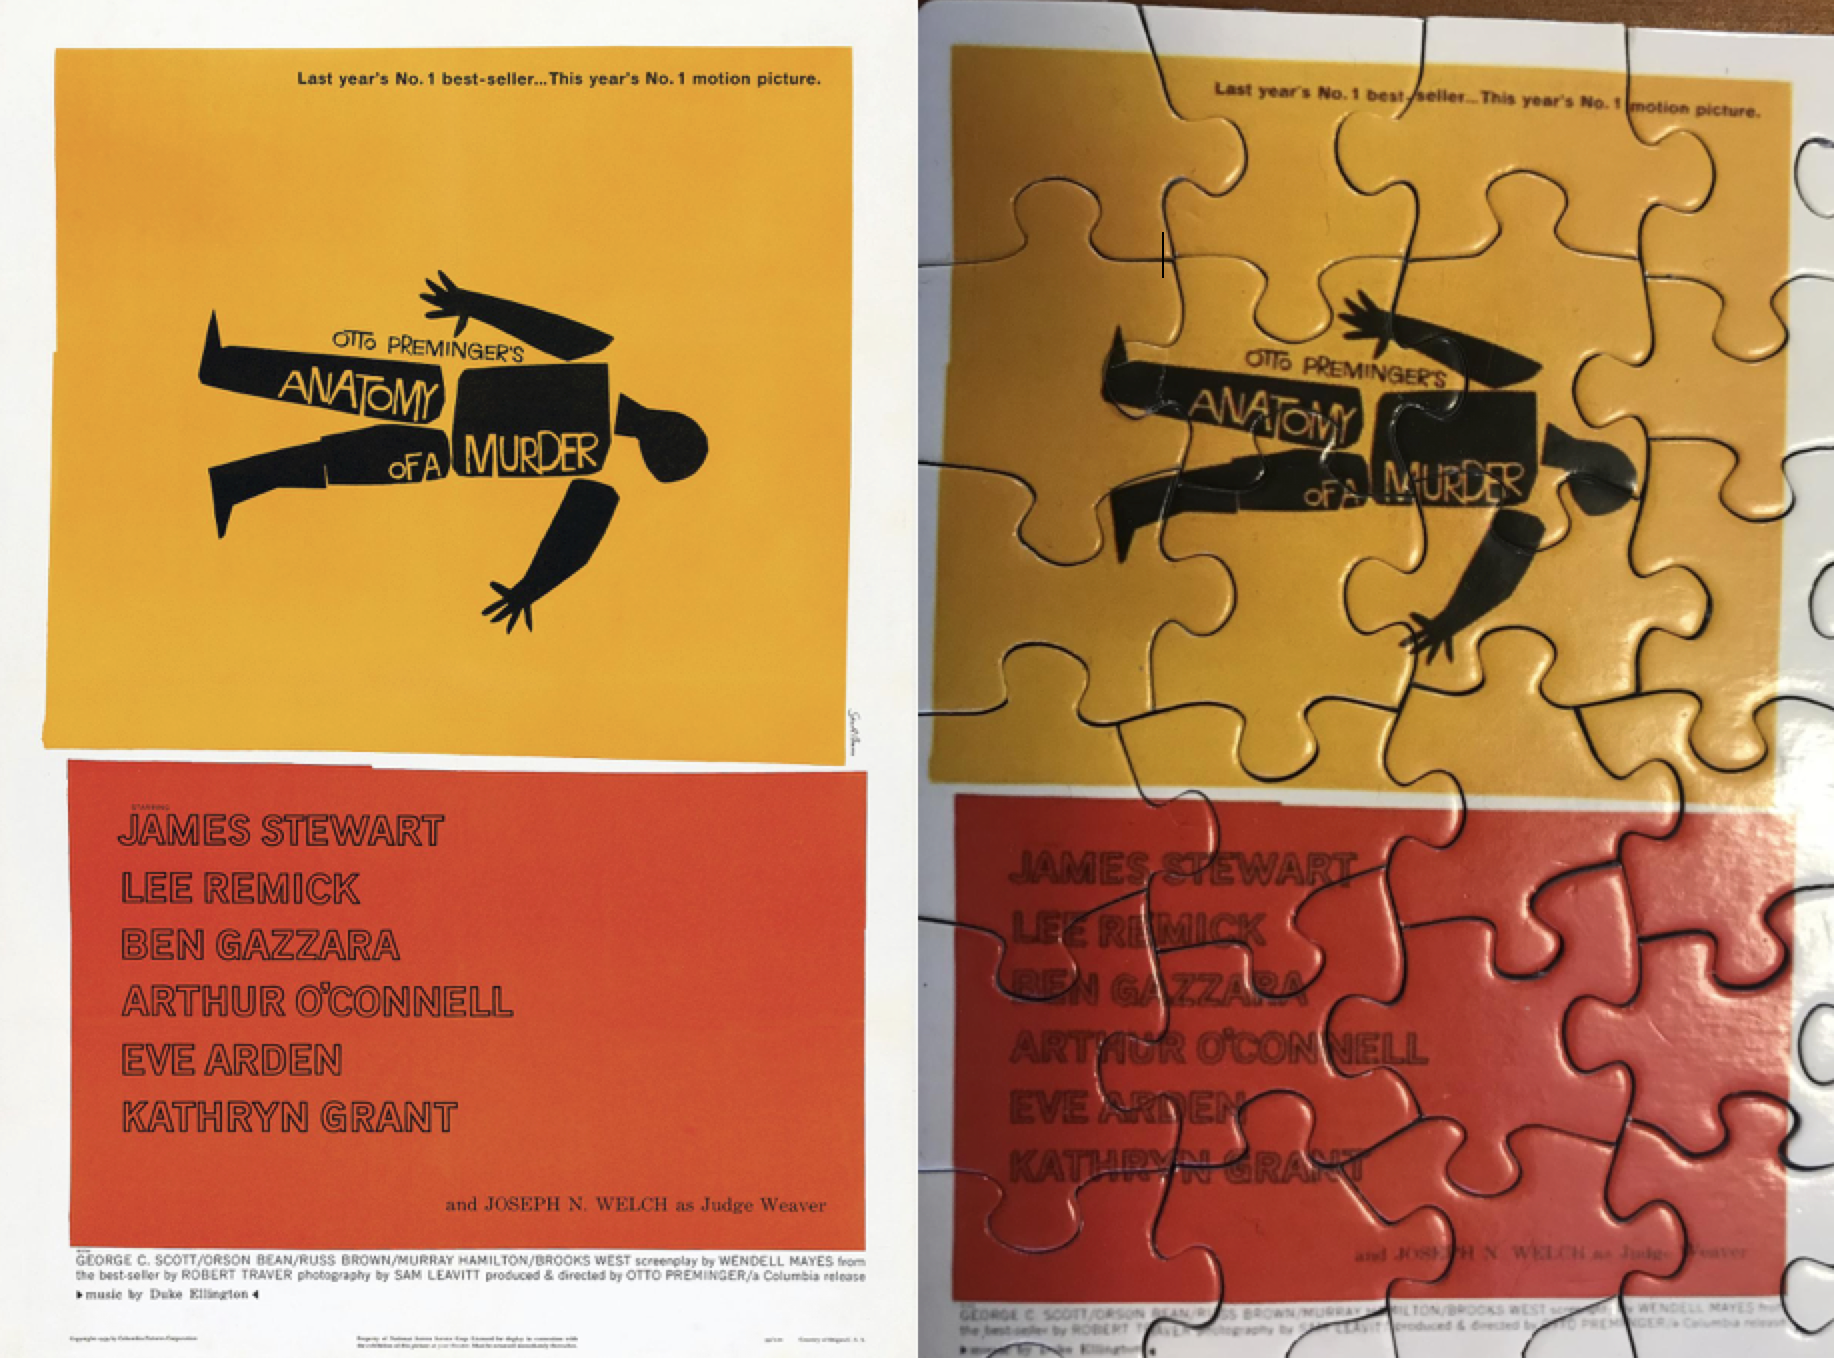 Building My Movie Posters Puzzle: Anatomy of a Murder - Lebeau\'s Le Blog